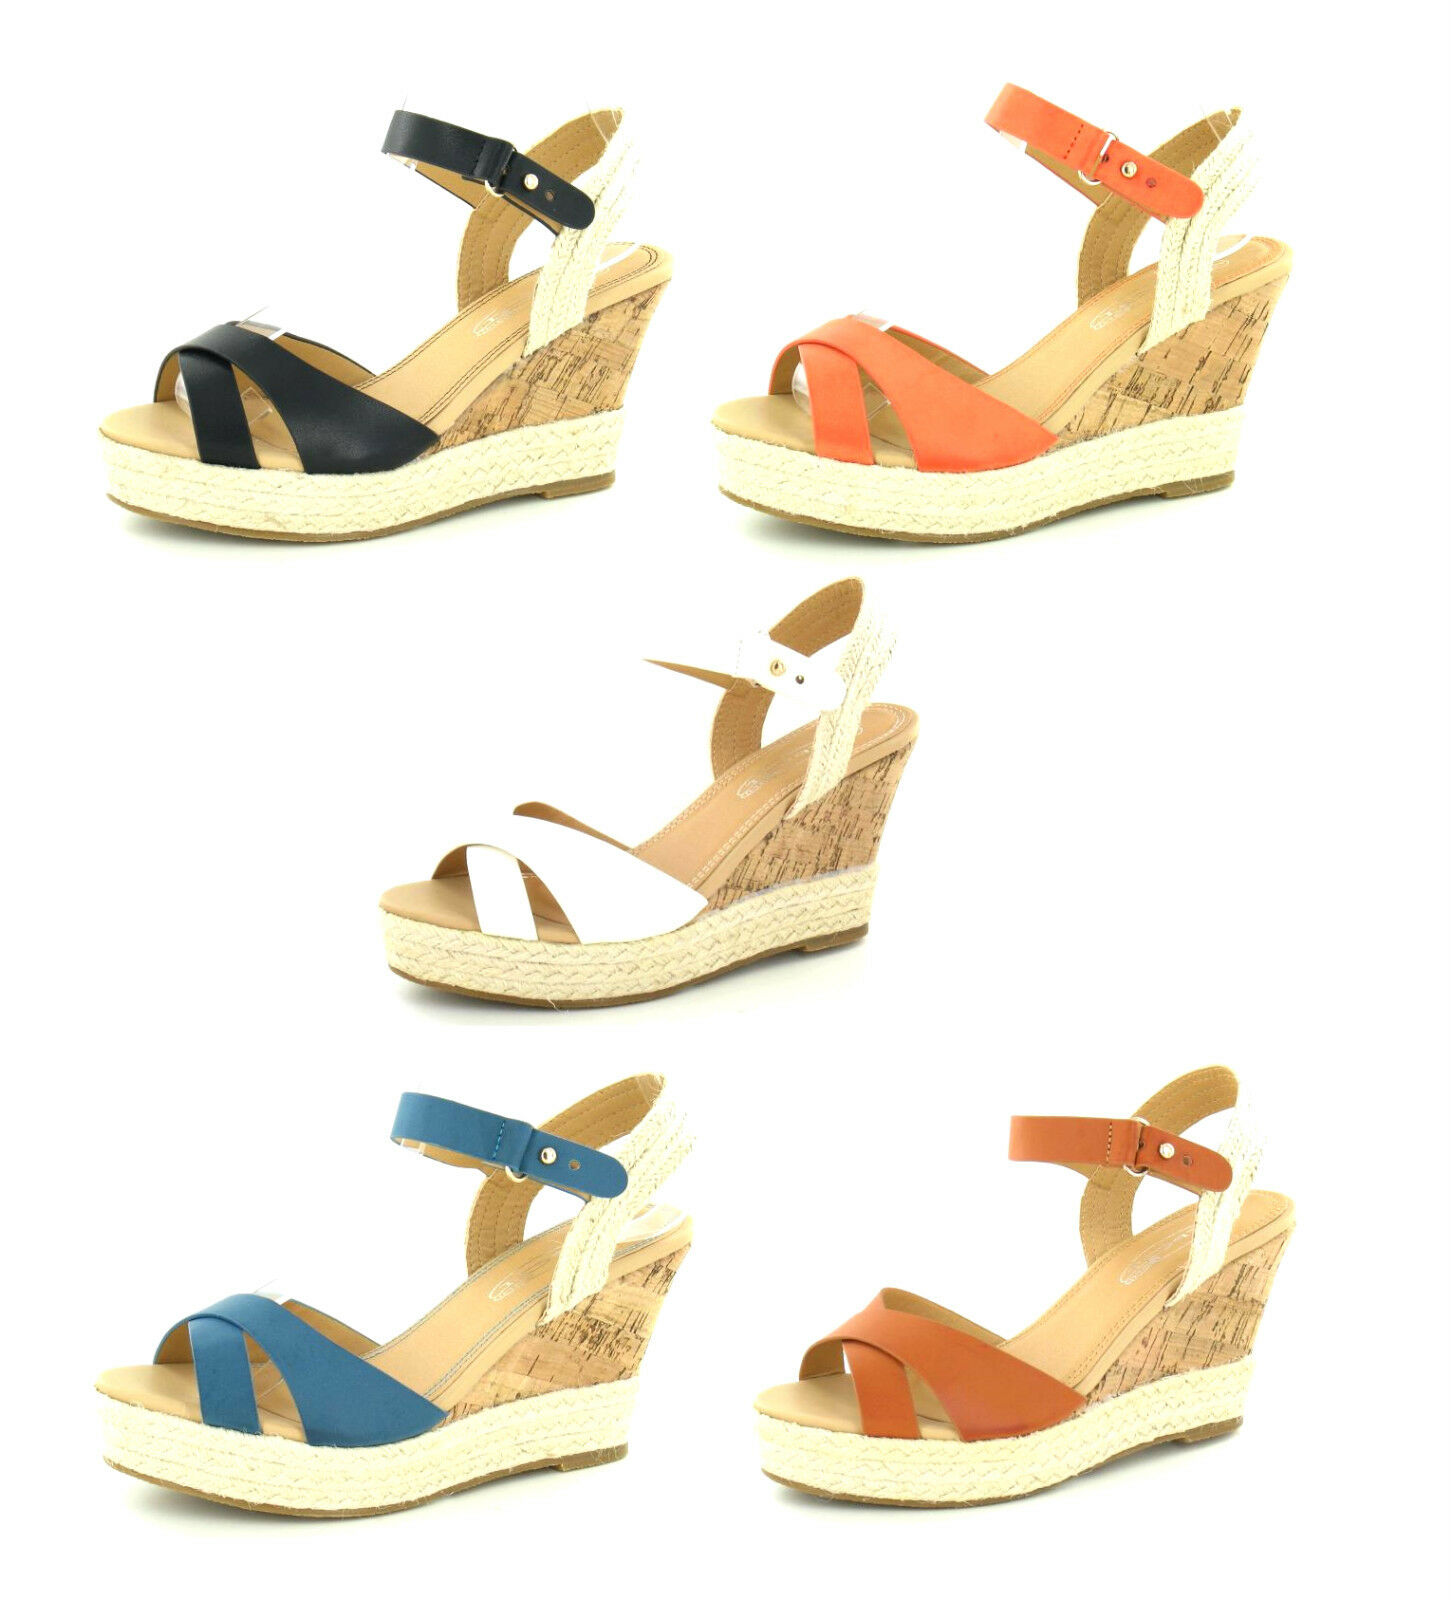 Man's/Woman's SALE LADIES SPOT ON HESSIAN CORK WEDGE SANDALS HEEL CROSS OVER SUMMER SANDALS WEDGE F2227 Crazy price Quality First Perfect processing AA1106 01c6e2